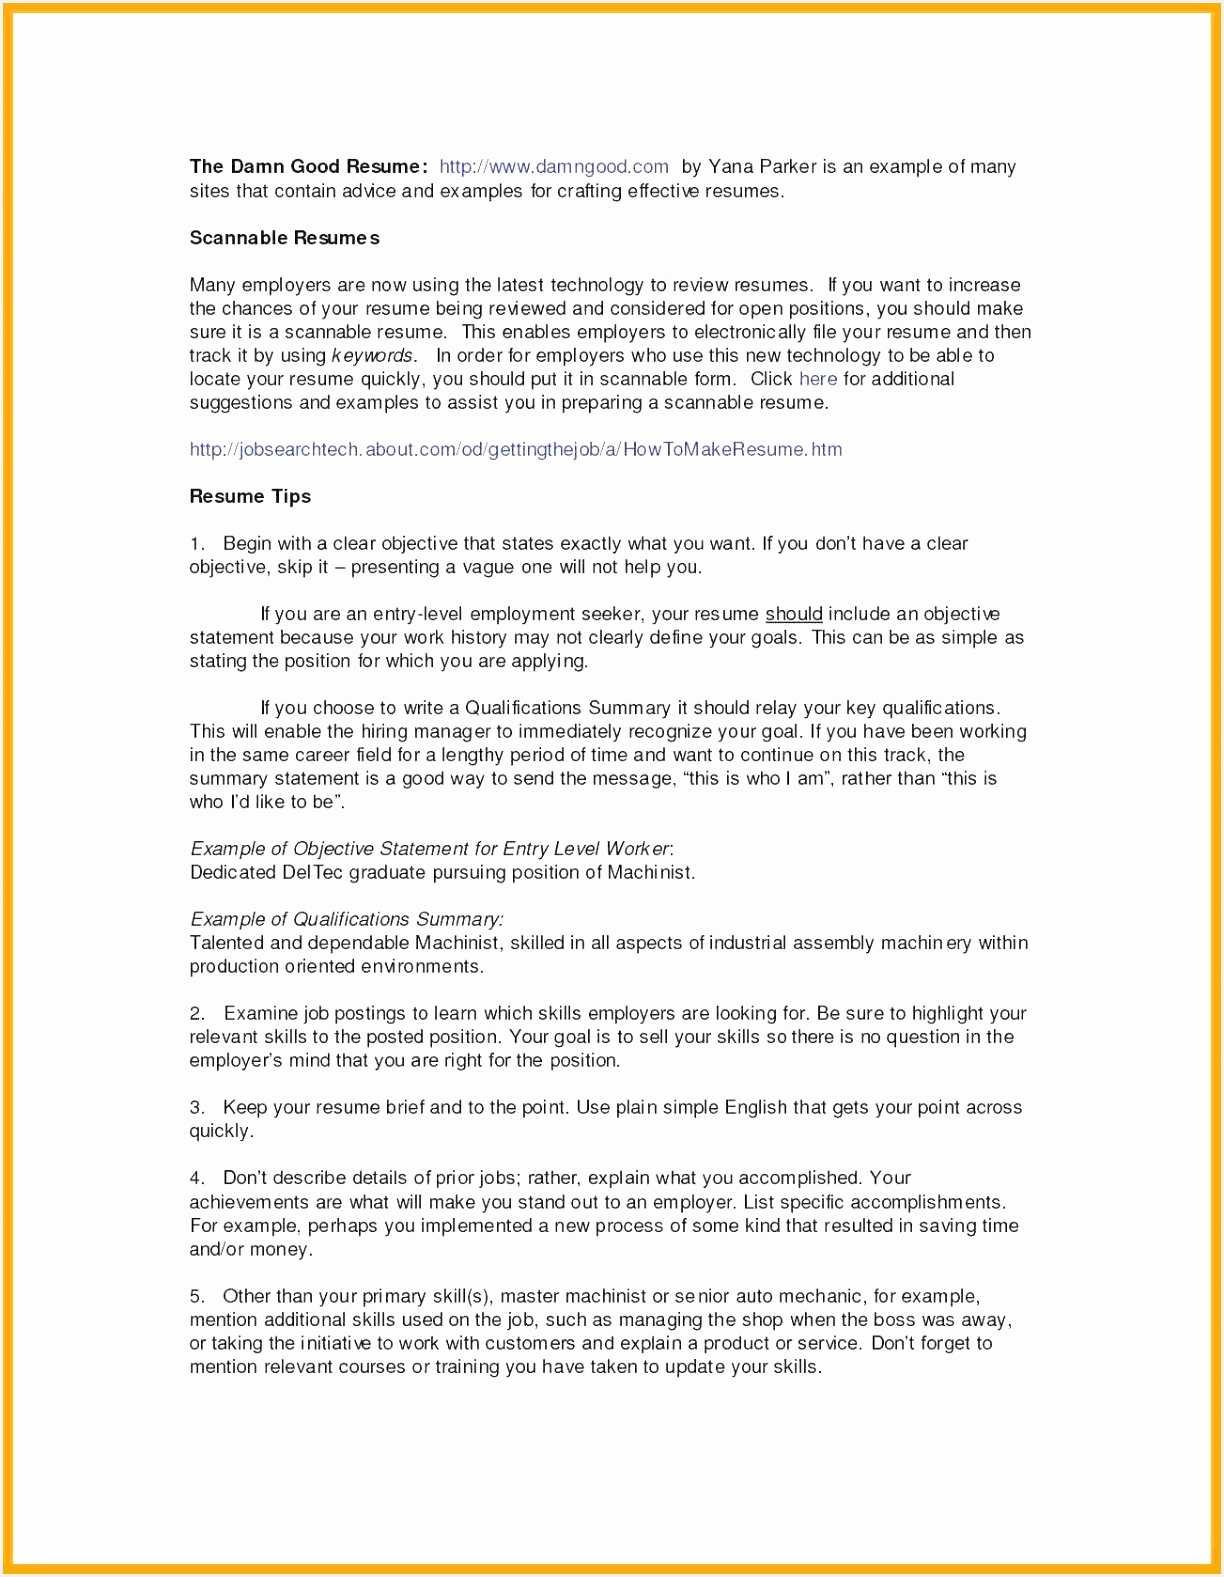 Resume Accountant Sample Nlnqd Elegant Sample Resume Accountant Of 7 Resume Accountant Sample